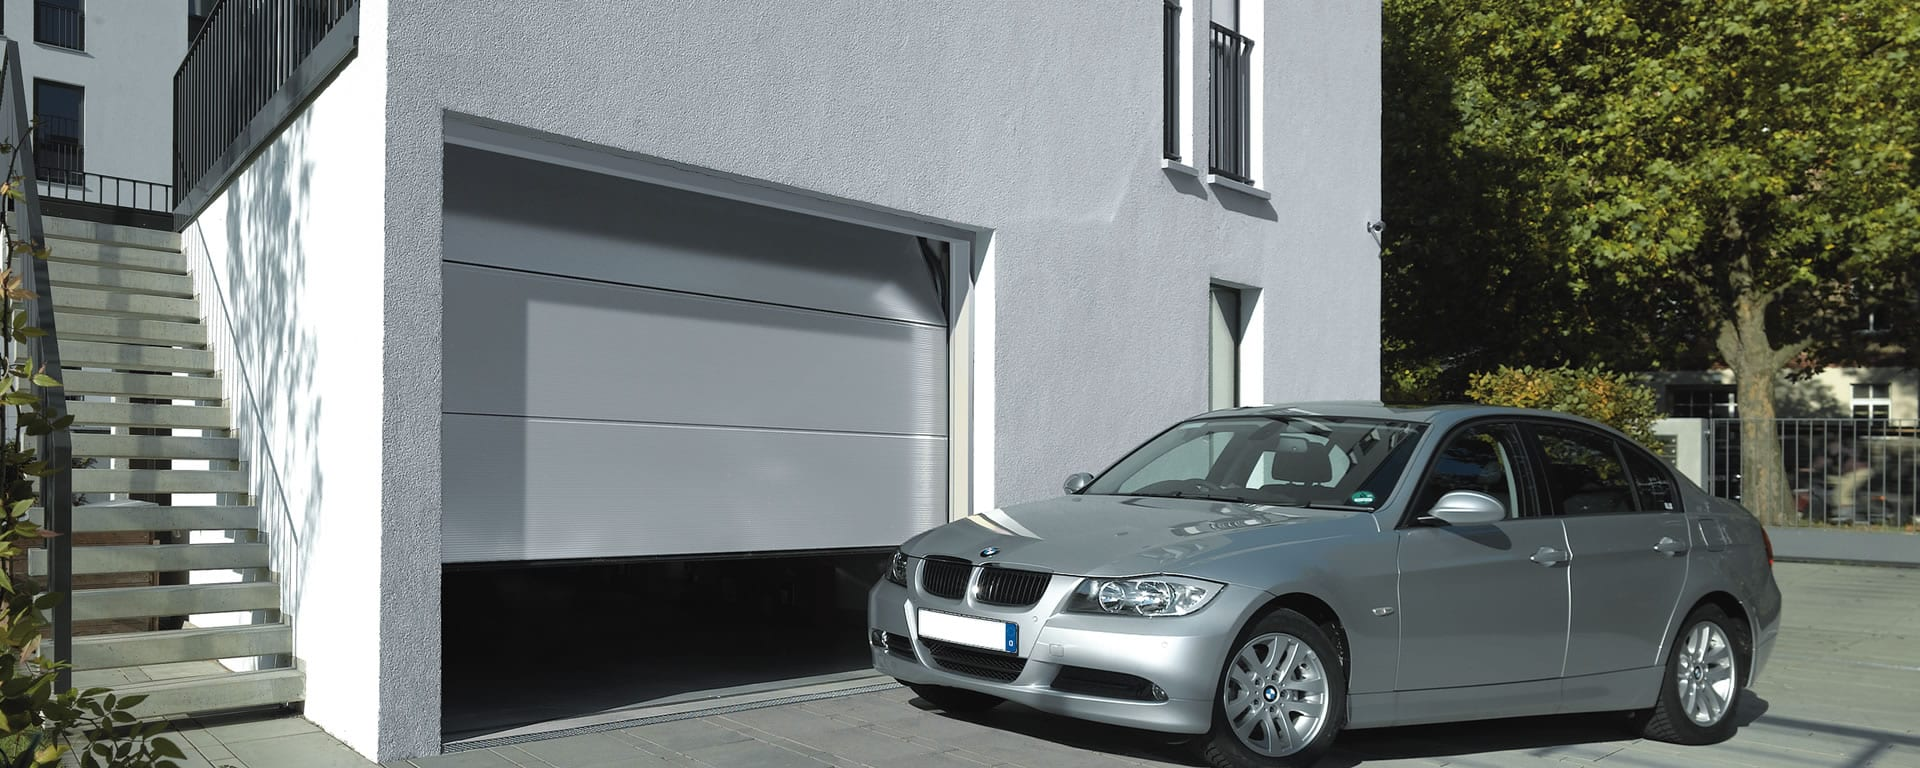 Seceuroglide insulated sectional garage door georgian cassette - Sectional Garage Doors